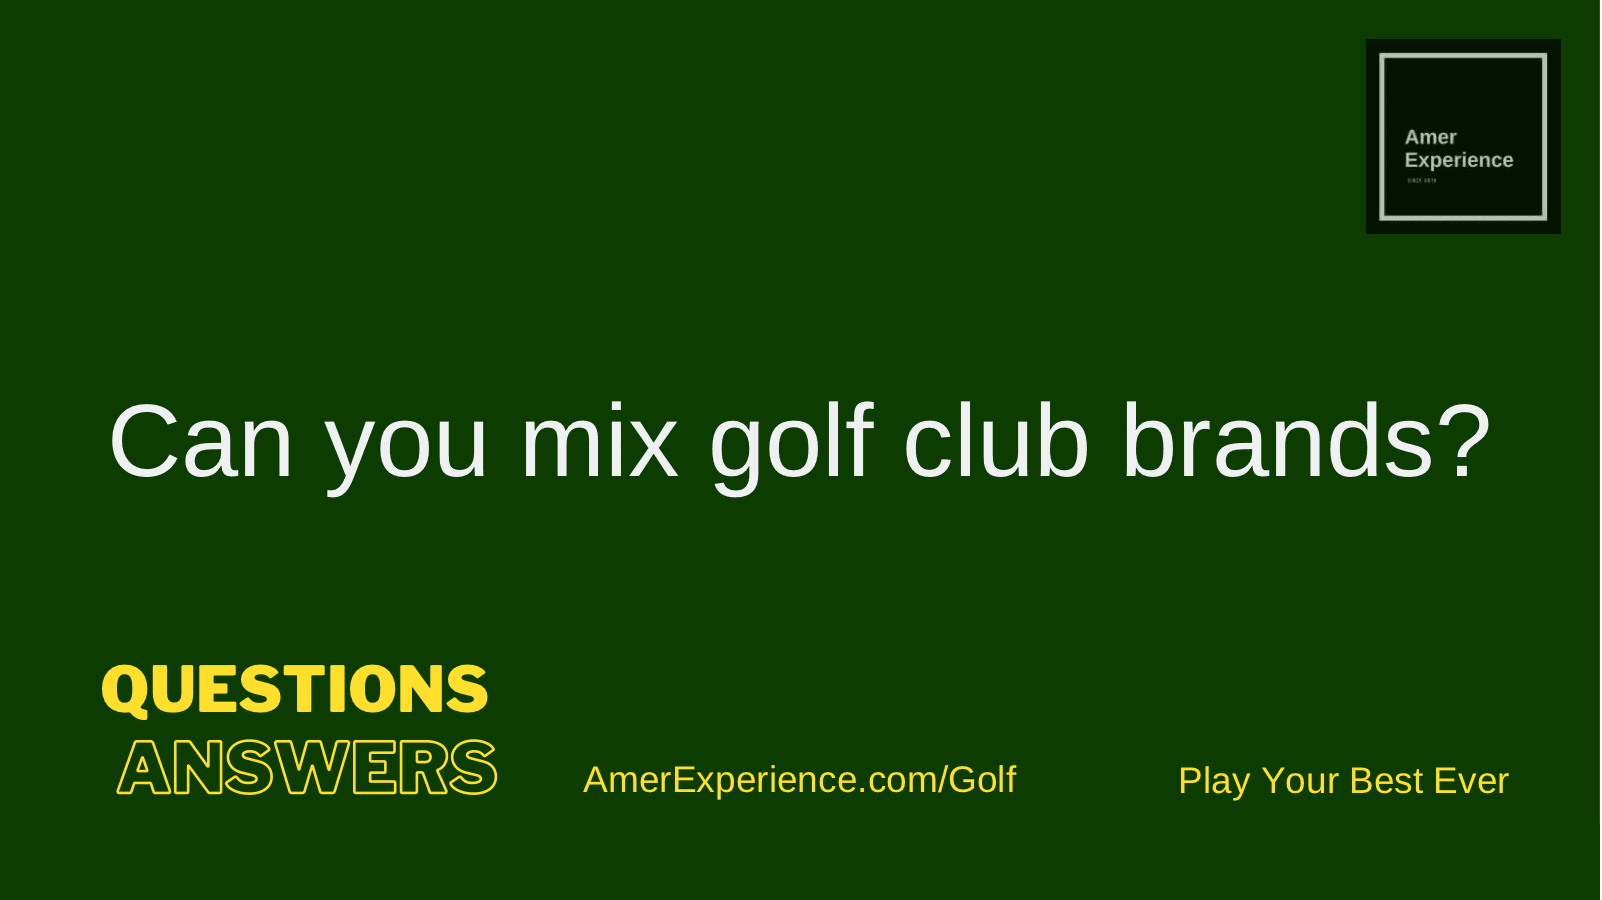 Can you mix golf, Can you mix golf club brands?, AMER EXPERIENCE